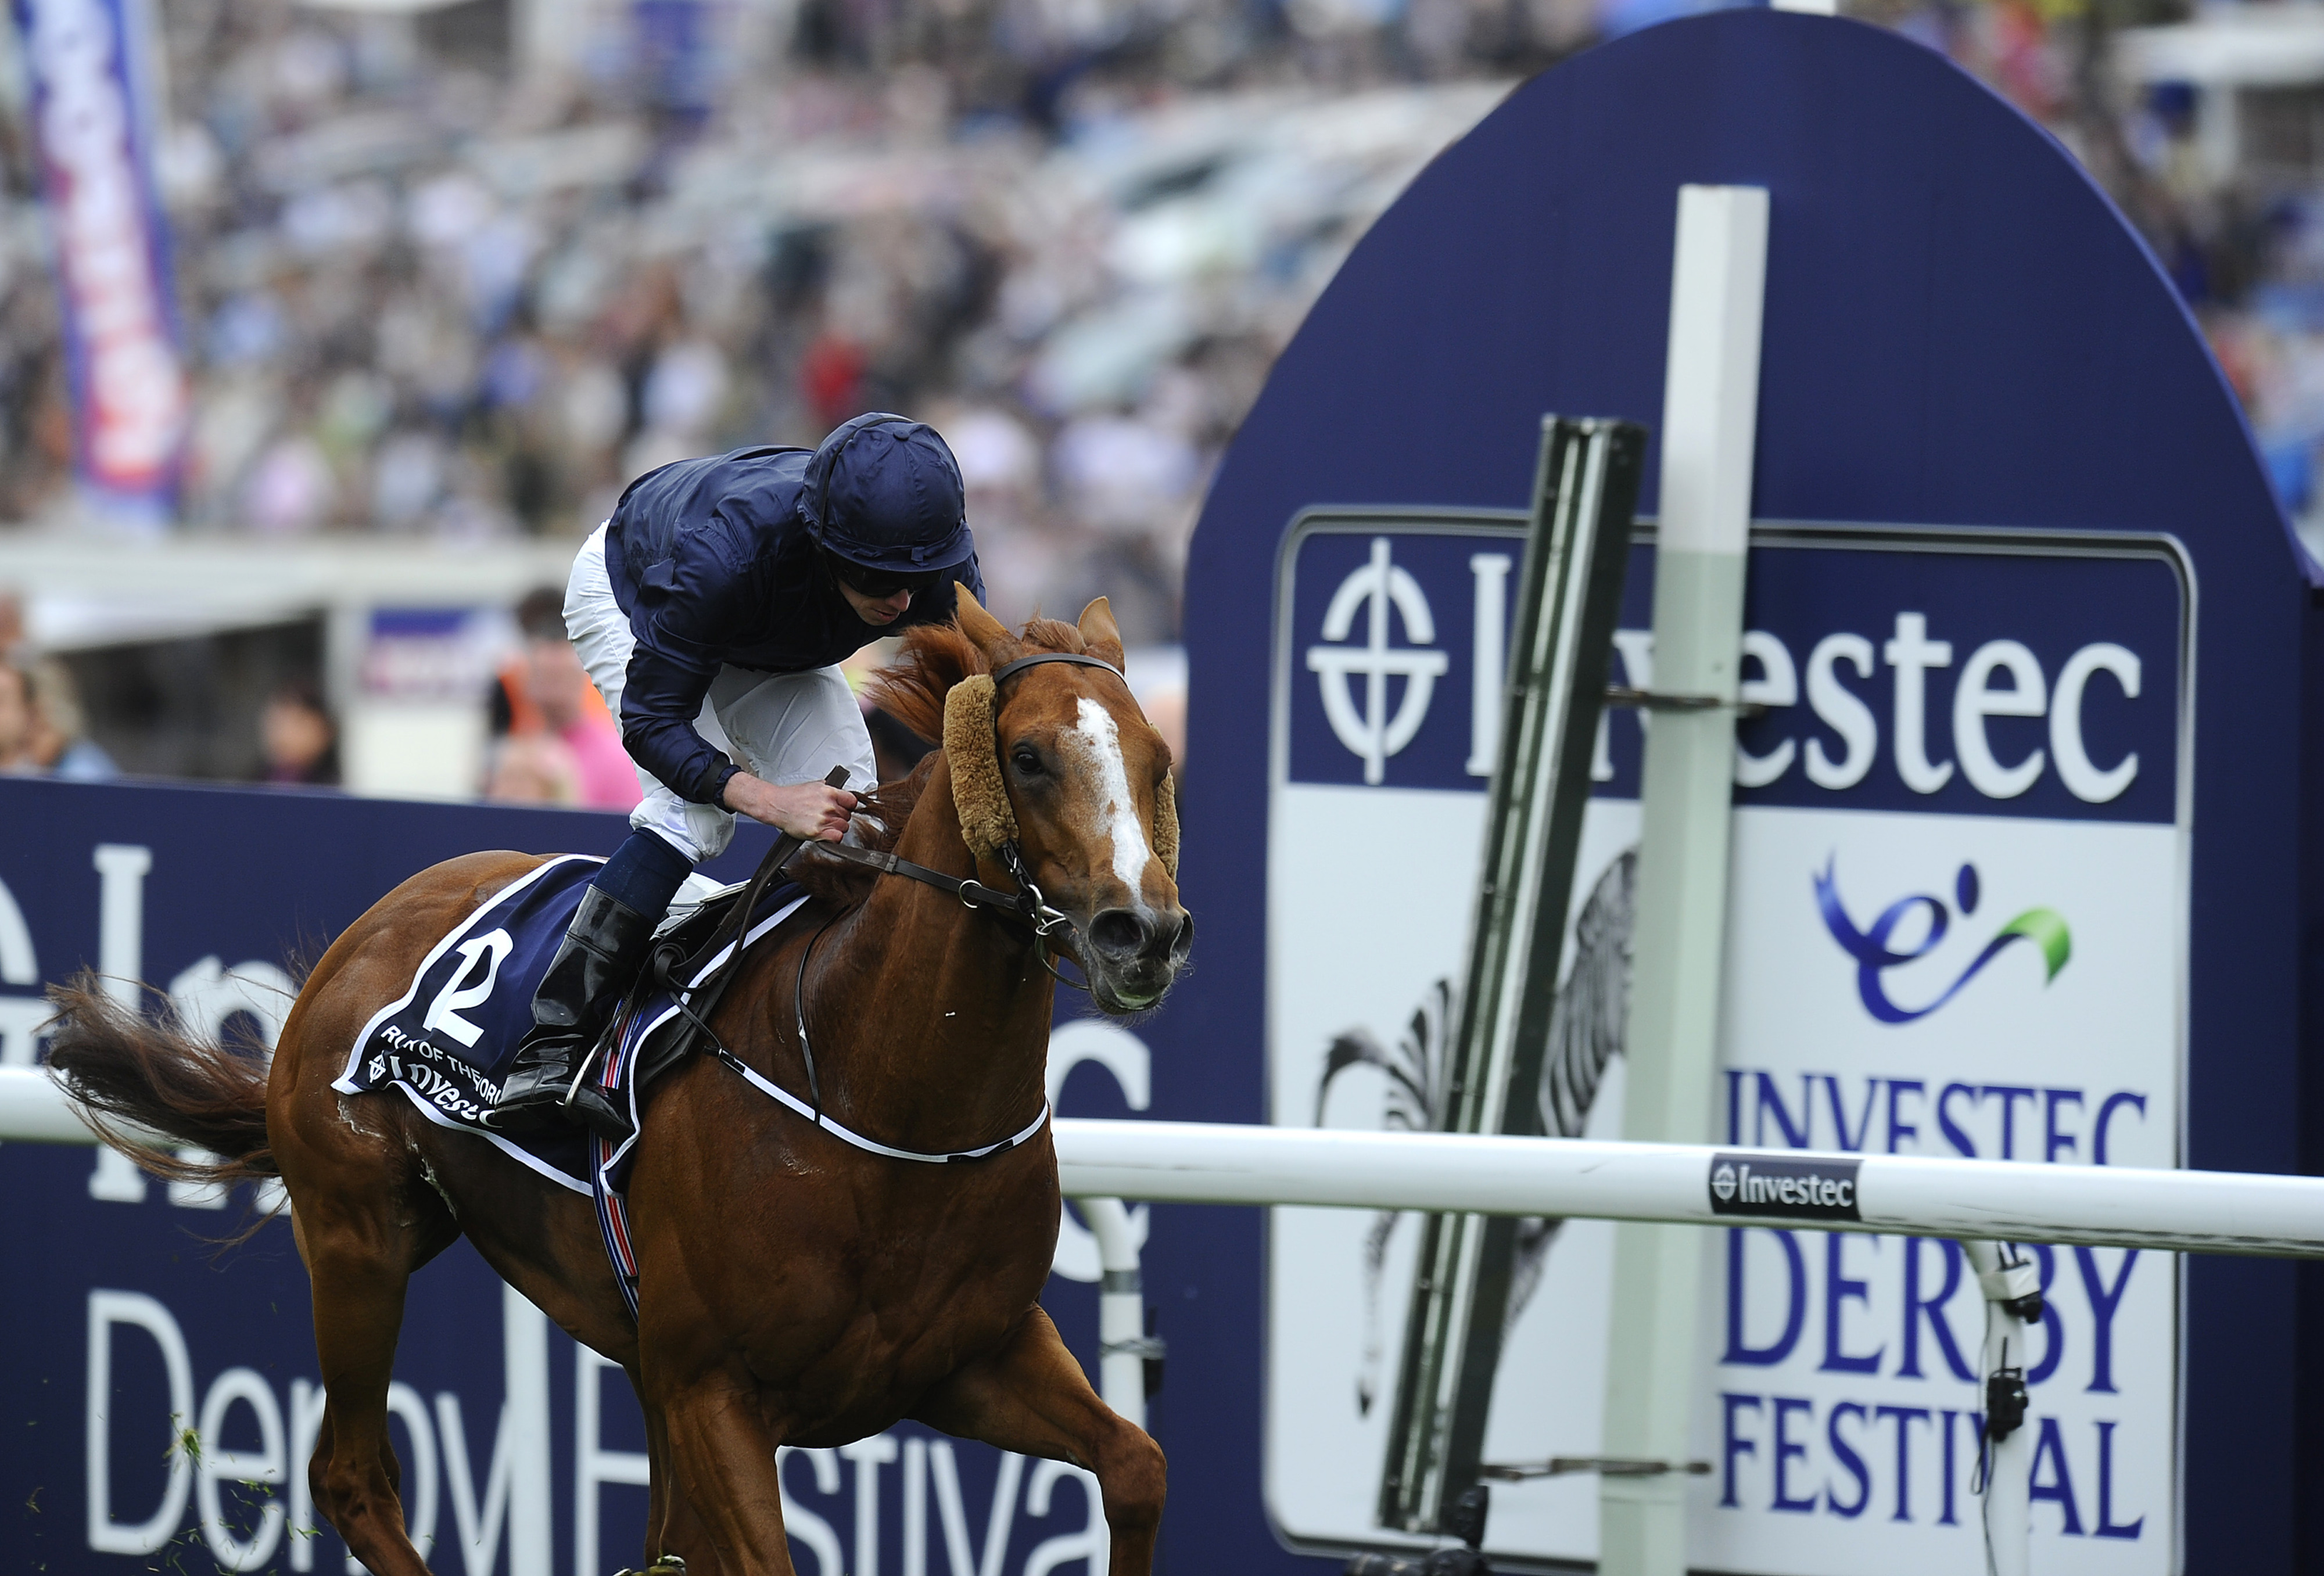 2013 Epsom Derby winner Ruler of the World (IRE) is the 9/2 morning line favorite for the 2014 Dubai World Cup at Meydan on Saturday, March 29th.